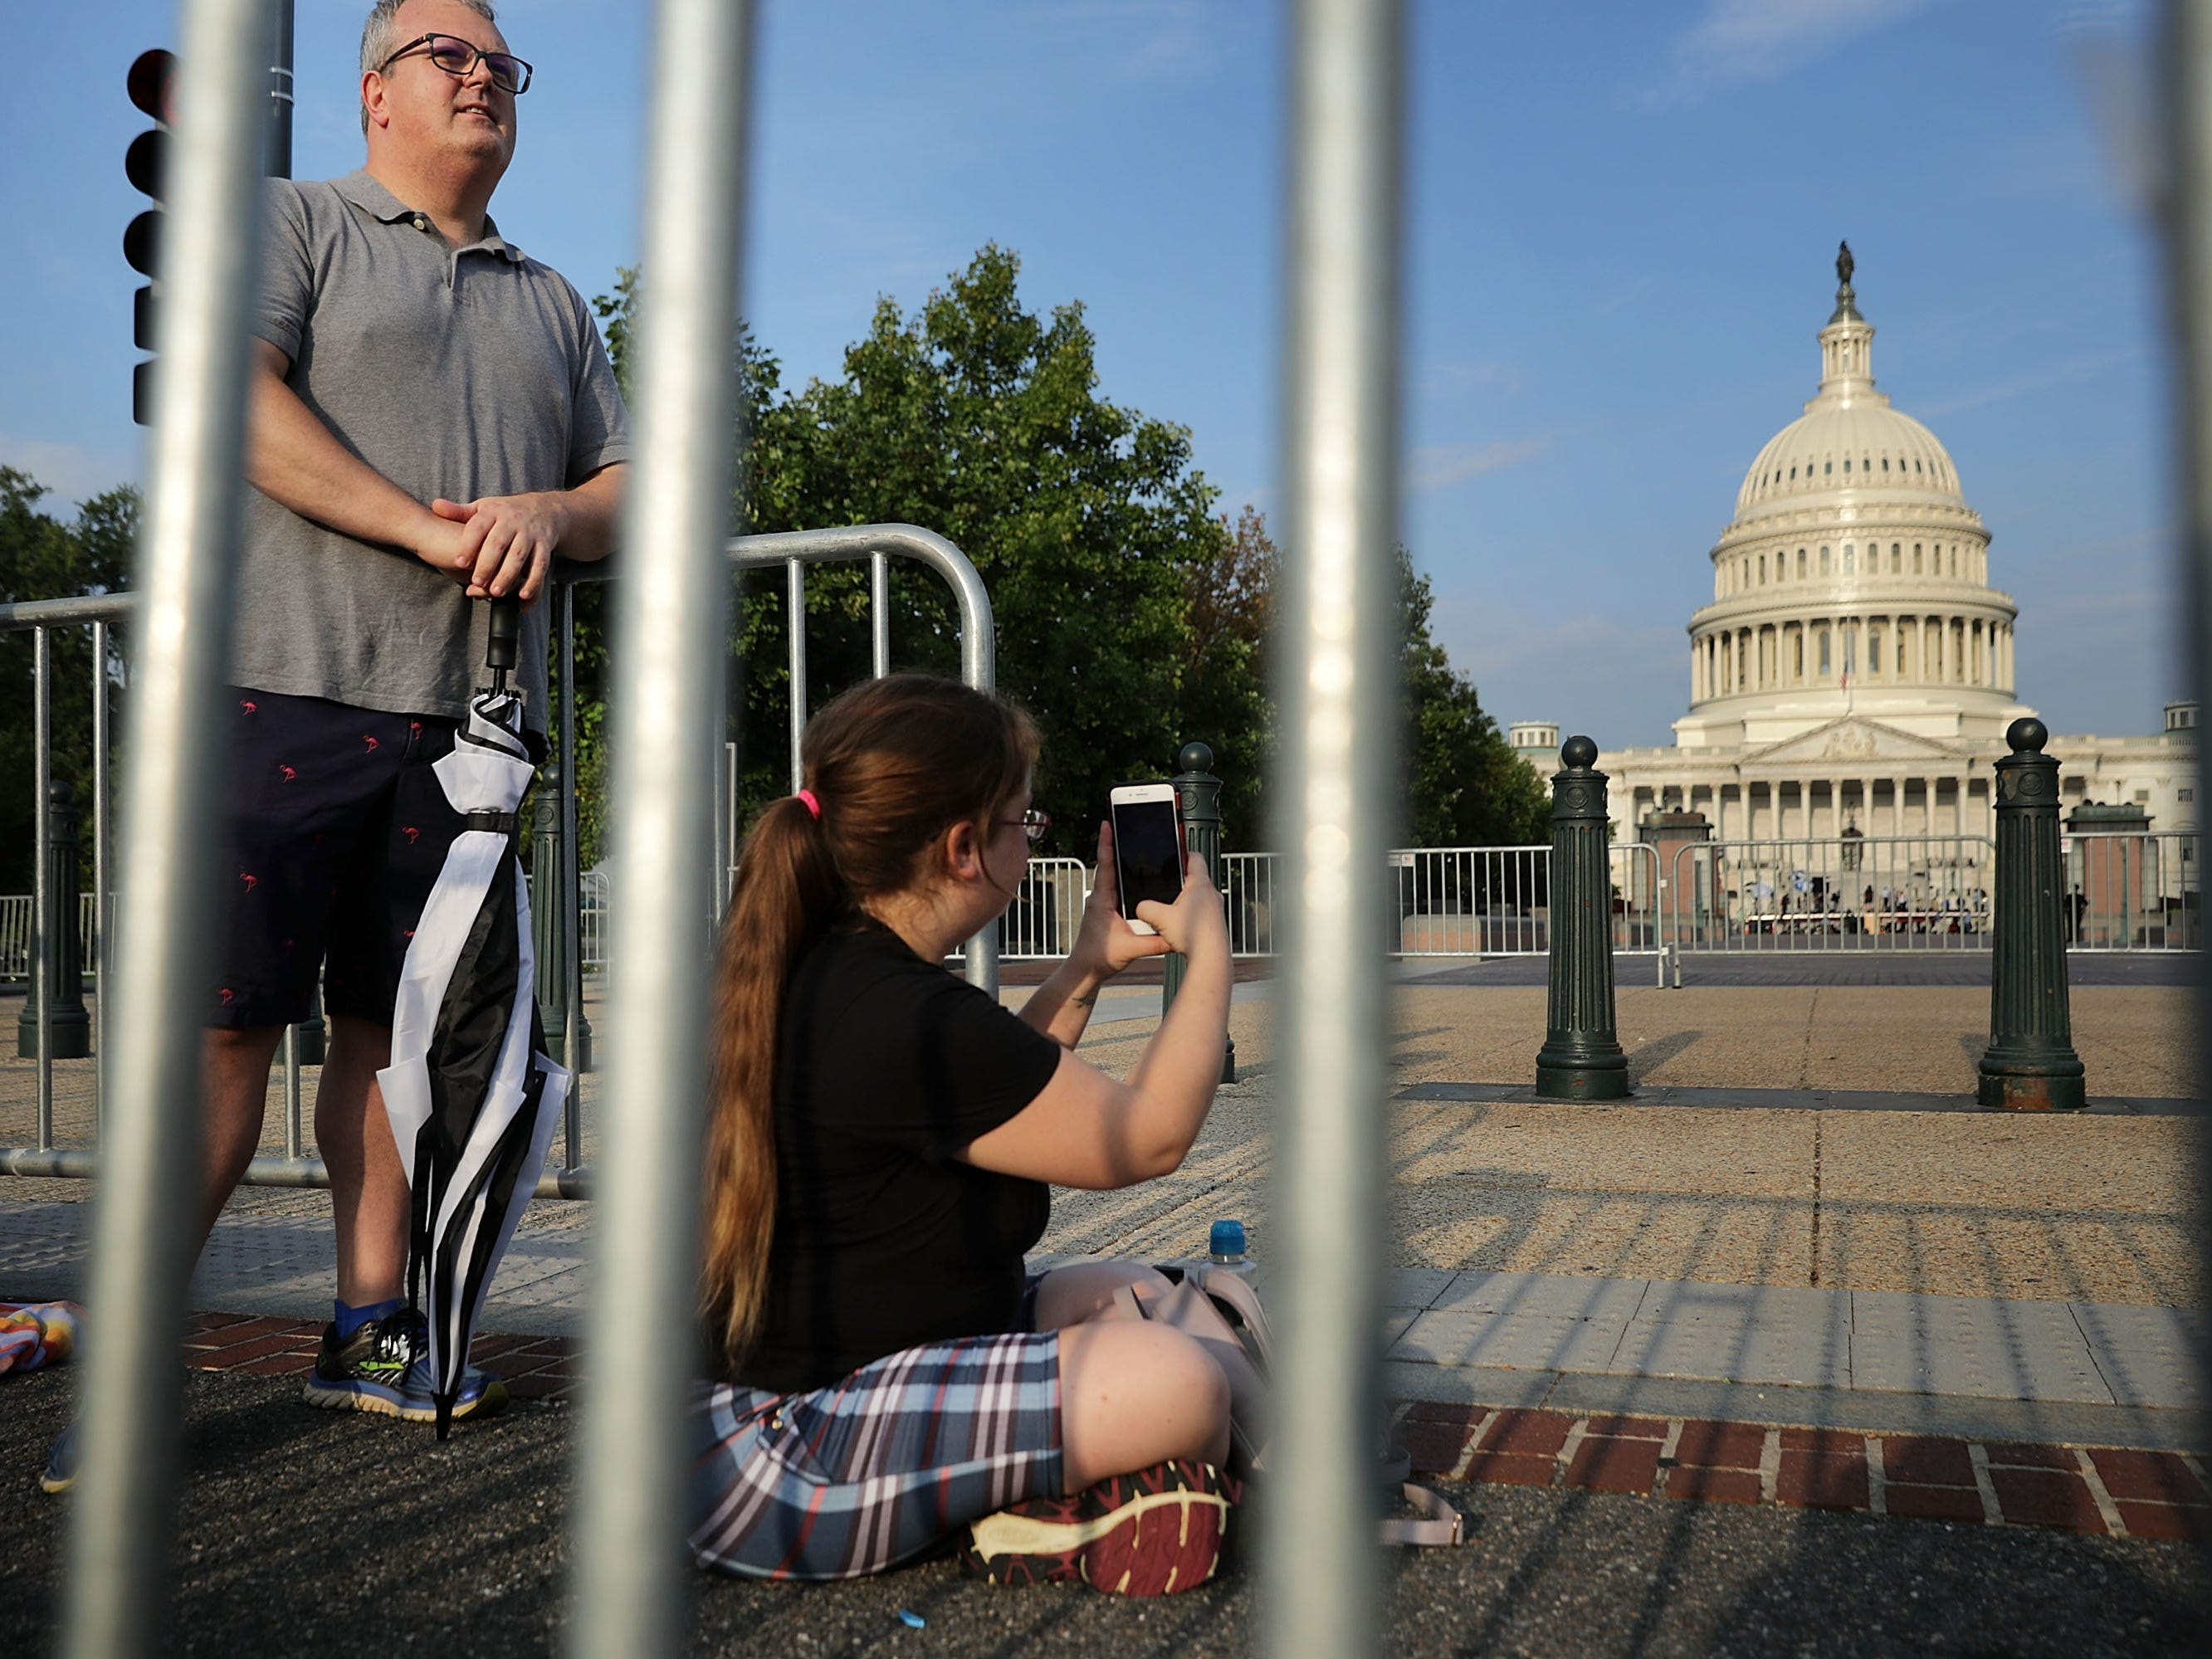 "WASHINGTON, DC - AUGUST 31:  Brian Erdelyi (L) of Richmond, Virginia, and AnnMarie Farone of Indianapolis, Indiana, are first in line to pay respects to Sen. John McCain (R-AZ) when he lies in state later in the dat at the U.S. Capitol August 31, 2018 in Washington, DC. Erdelyi said he came to pay respects to McCain because he ""showed a lot of integrity, which is sorely missing today."" The late senator died August 25 at the age of 81 after a long battle with brain cancer. He will lie in state at the U.S. Capitol Friday, a rare honor bestowed on only 31 people in the past 166 years. Sen. McCain will be buried at his final resting place at the U.S. Naval Academy on Sunday.  (Photo by Chip Somodevilla/Getty Images) ORG XMIT: 775217654 ORIG FILE ID: 1025510134"